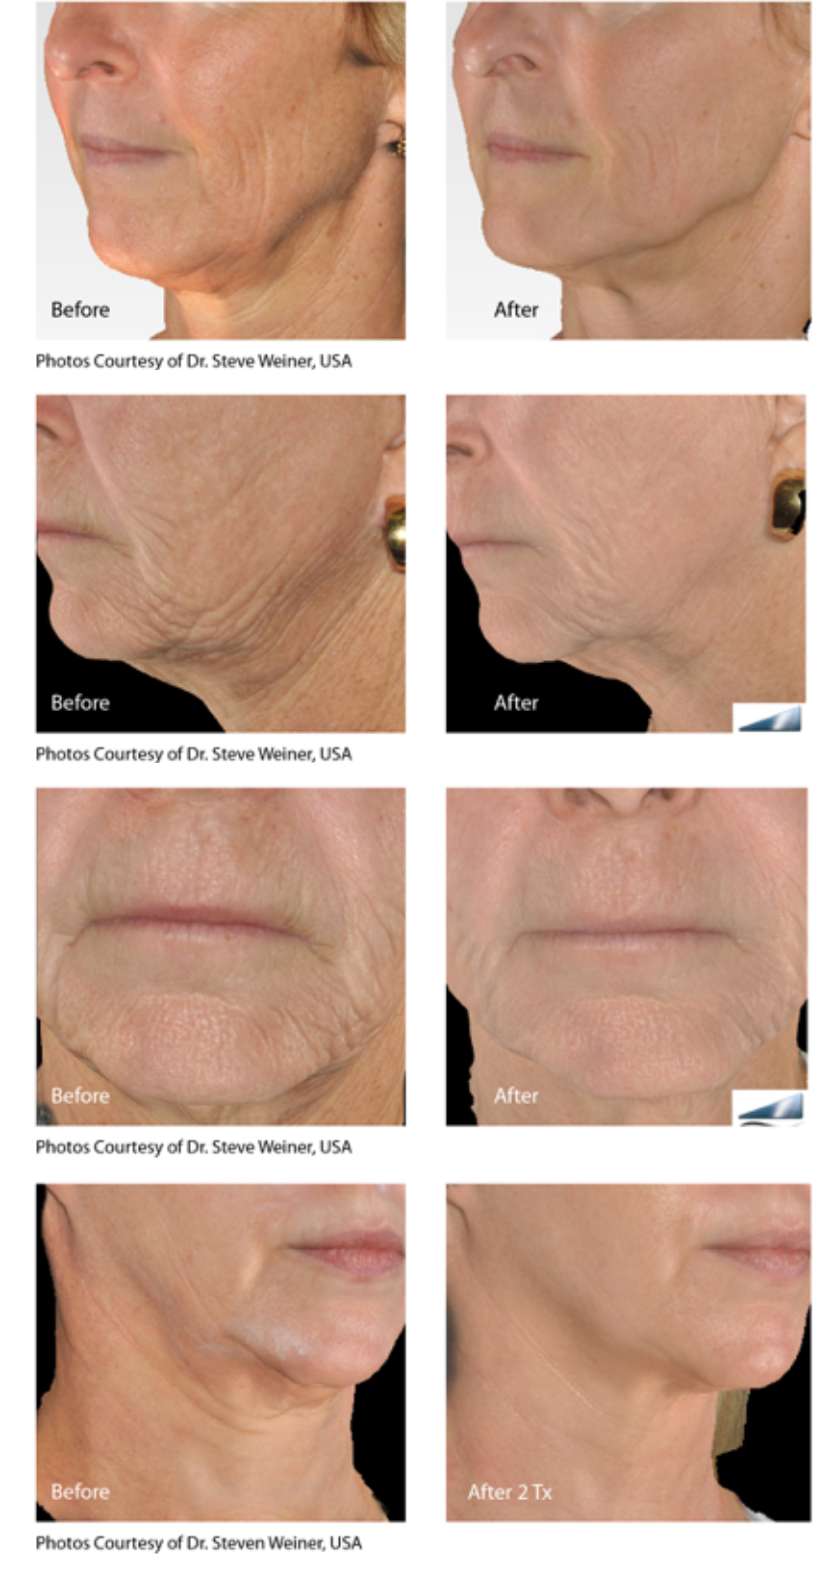 Infini skin tightening on the face.